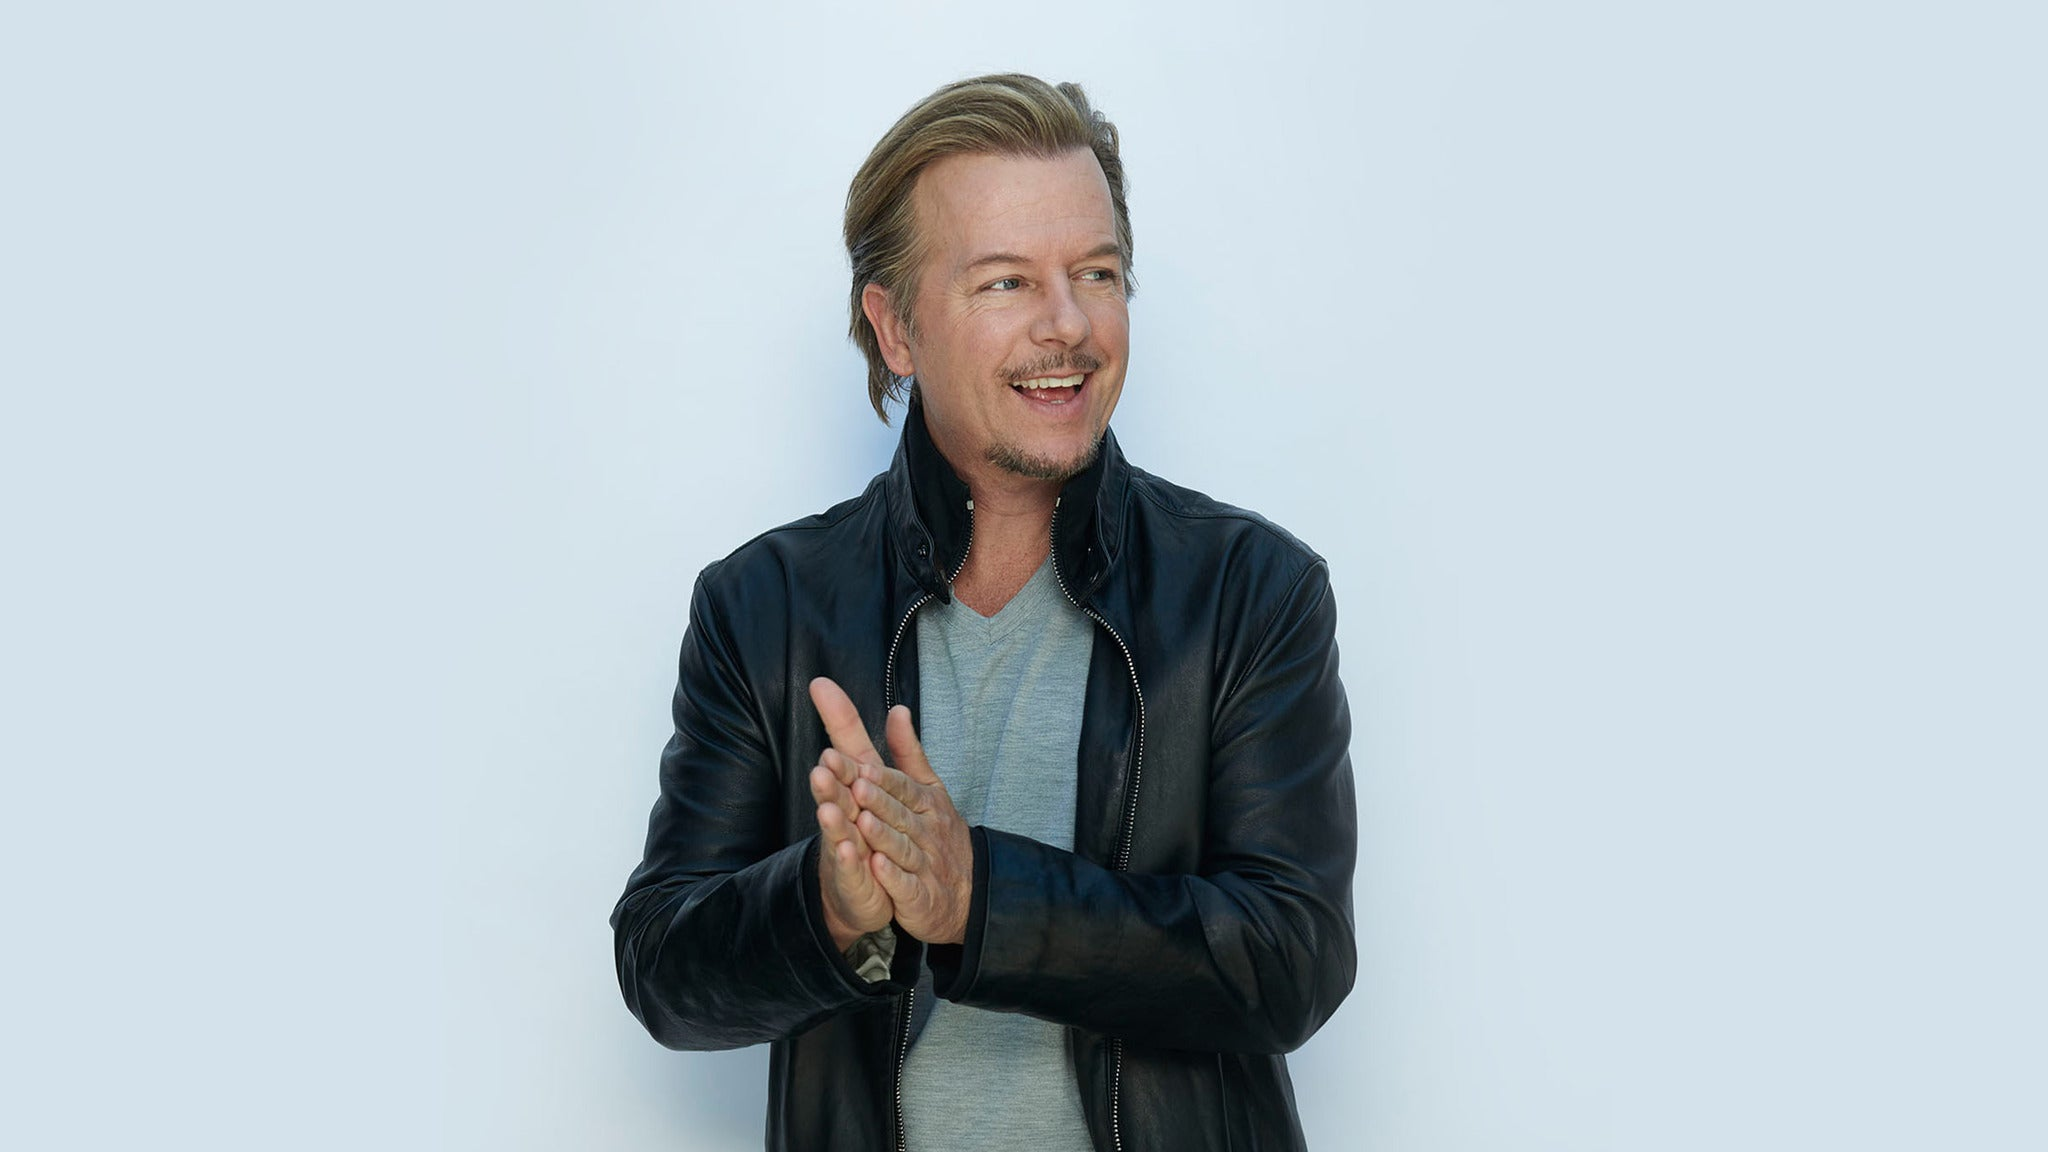 David Spade at Oxnard Levity Live